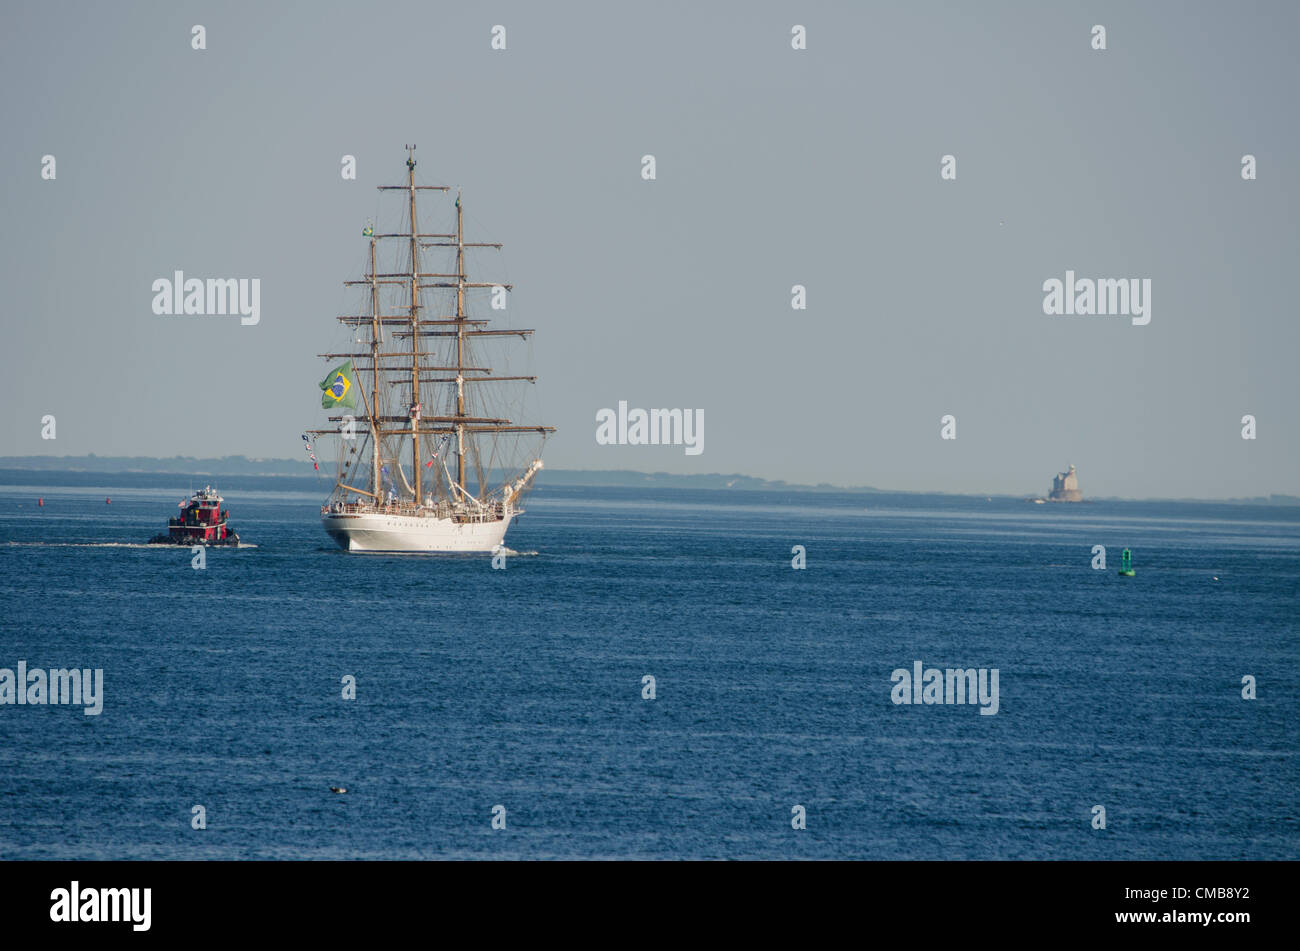 New London, Connecticut, USA - July 9, 2012: The Brazilian Navy's tall ship Cisne Branco sails away from Fort - Stock Image